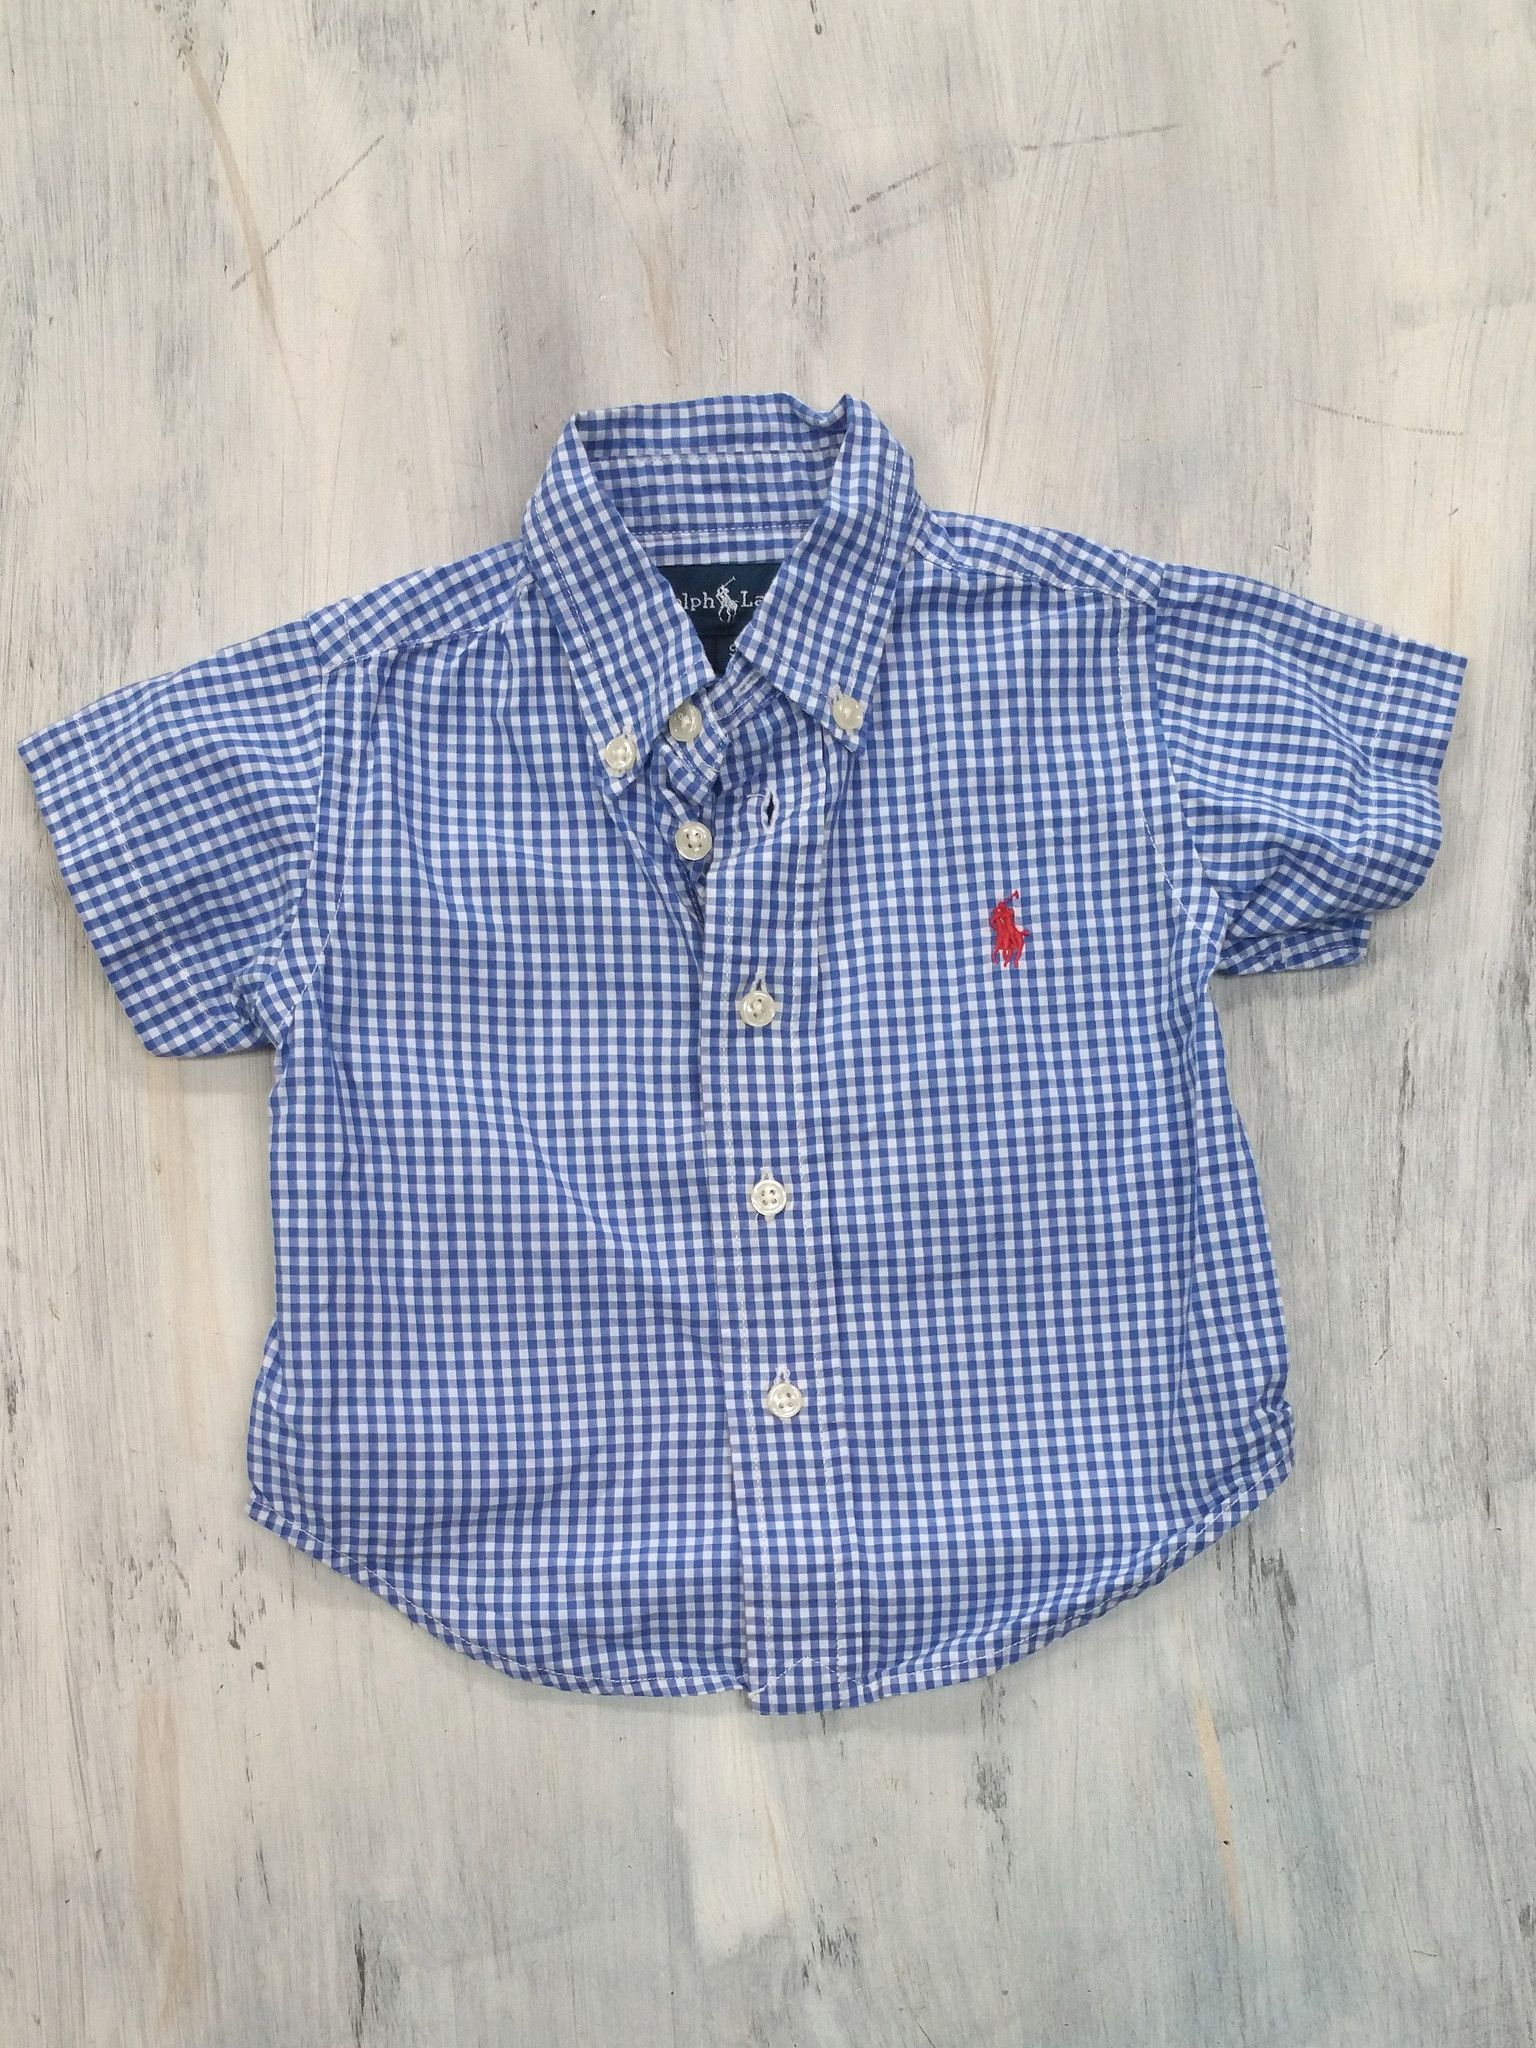 Ralph Lauren Blue Gingham Shirt - 9M